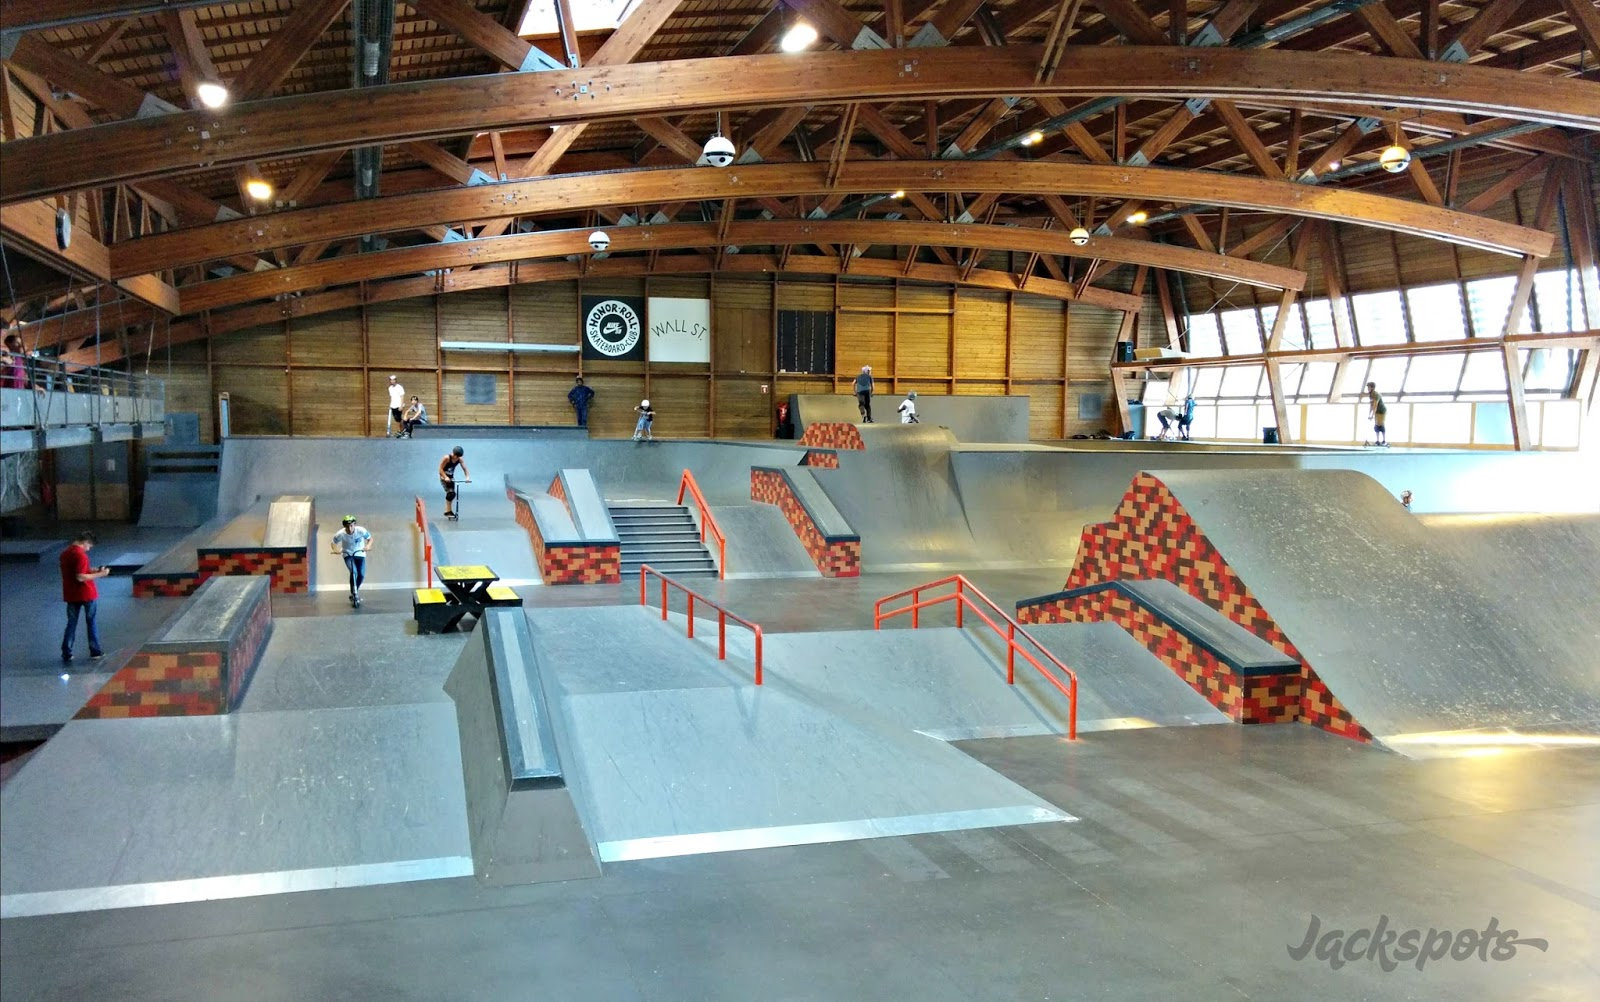 gerland le skatepark couvert de lyon jackspots. Black Bedroom Furniture Sets. Home Design Ideas